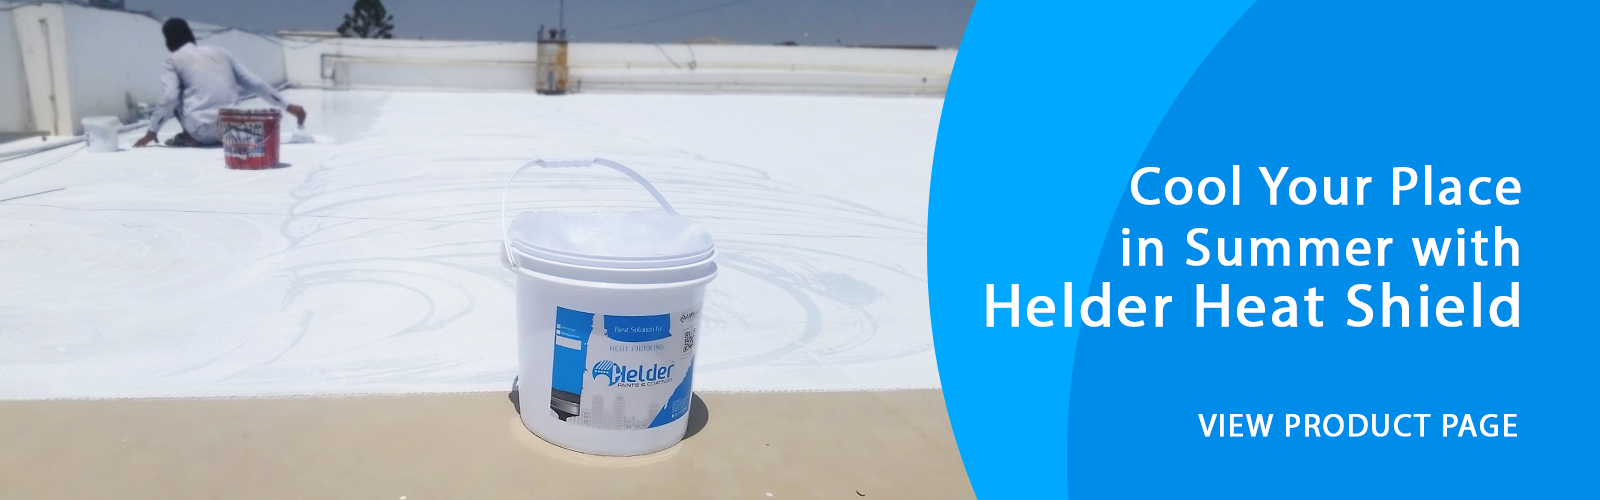 Visit Heat Proofing Product Page